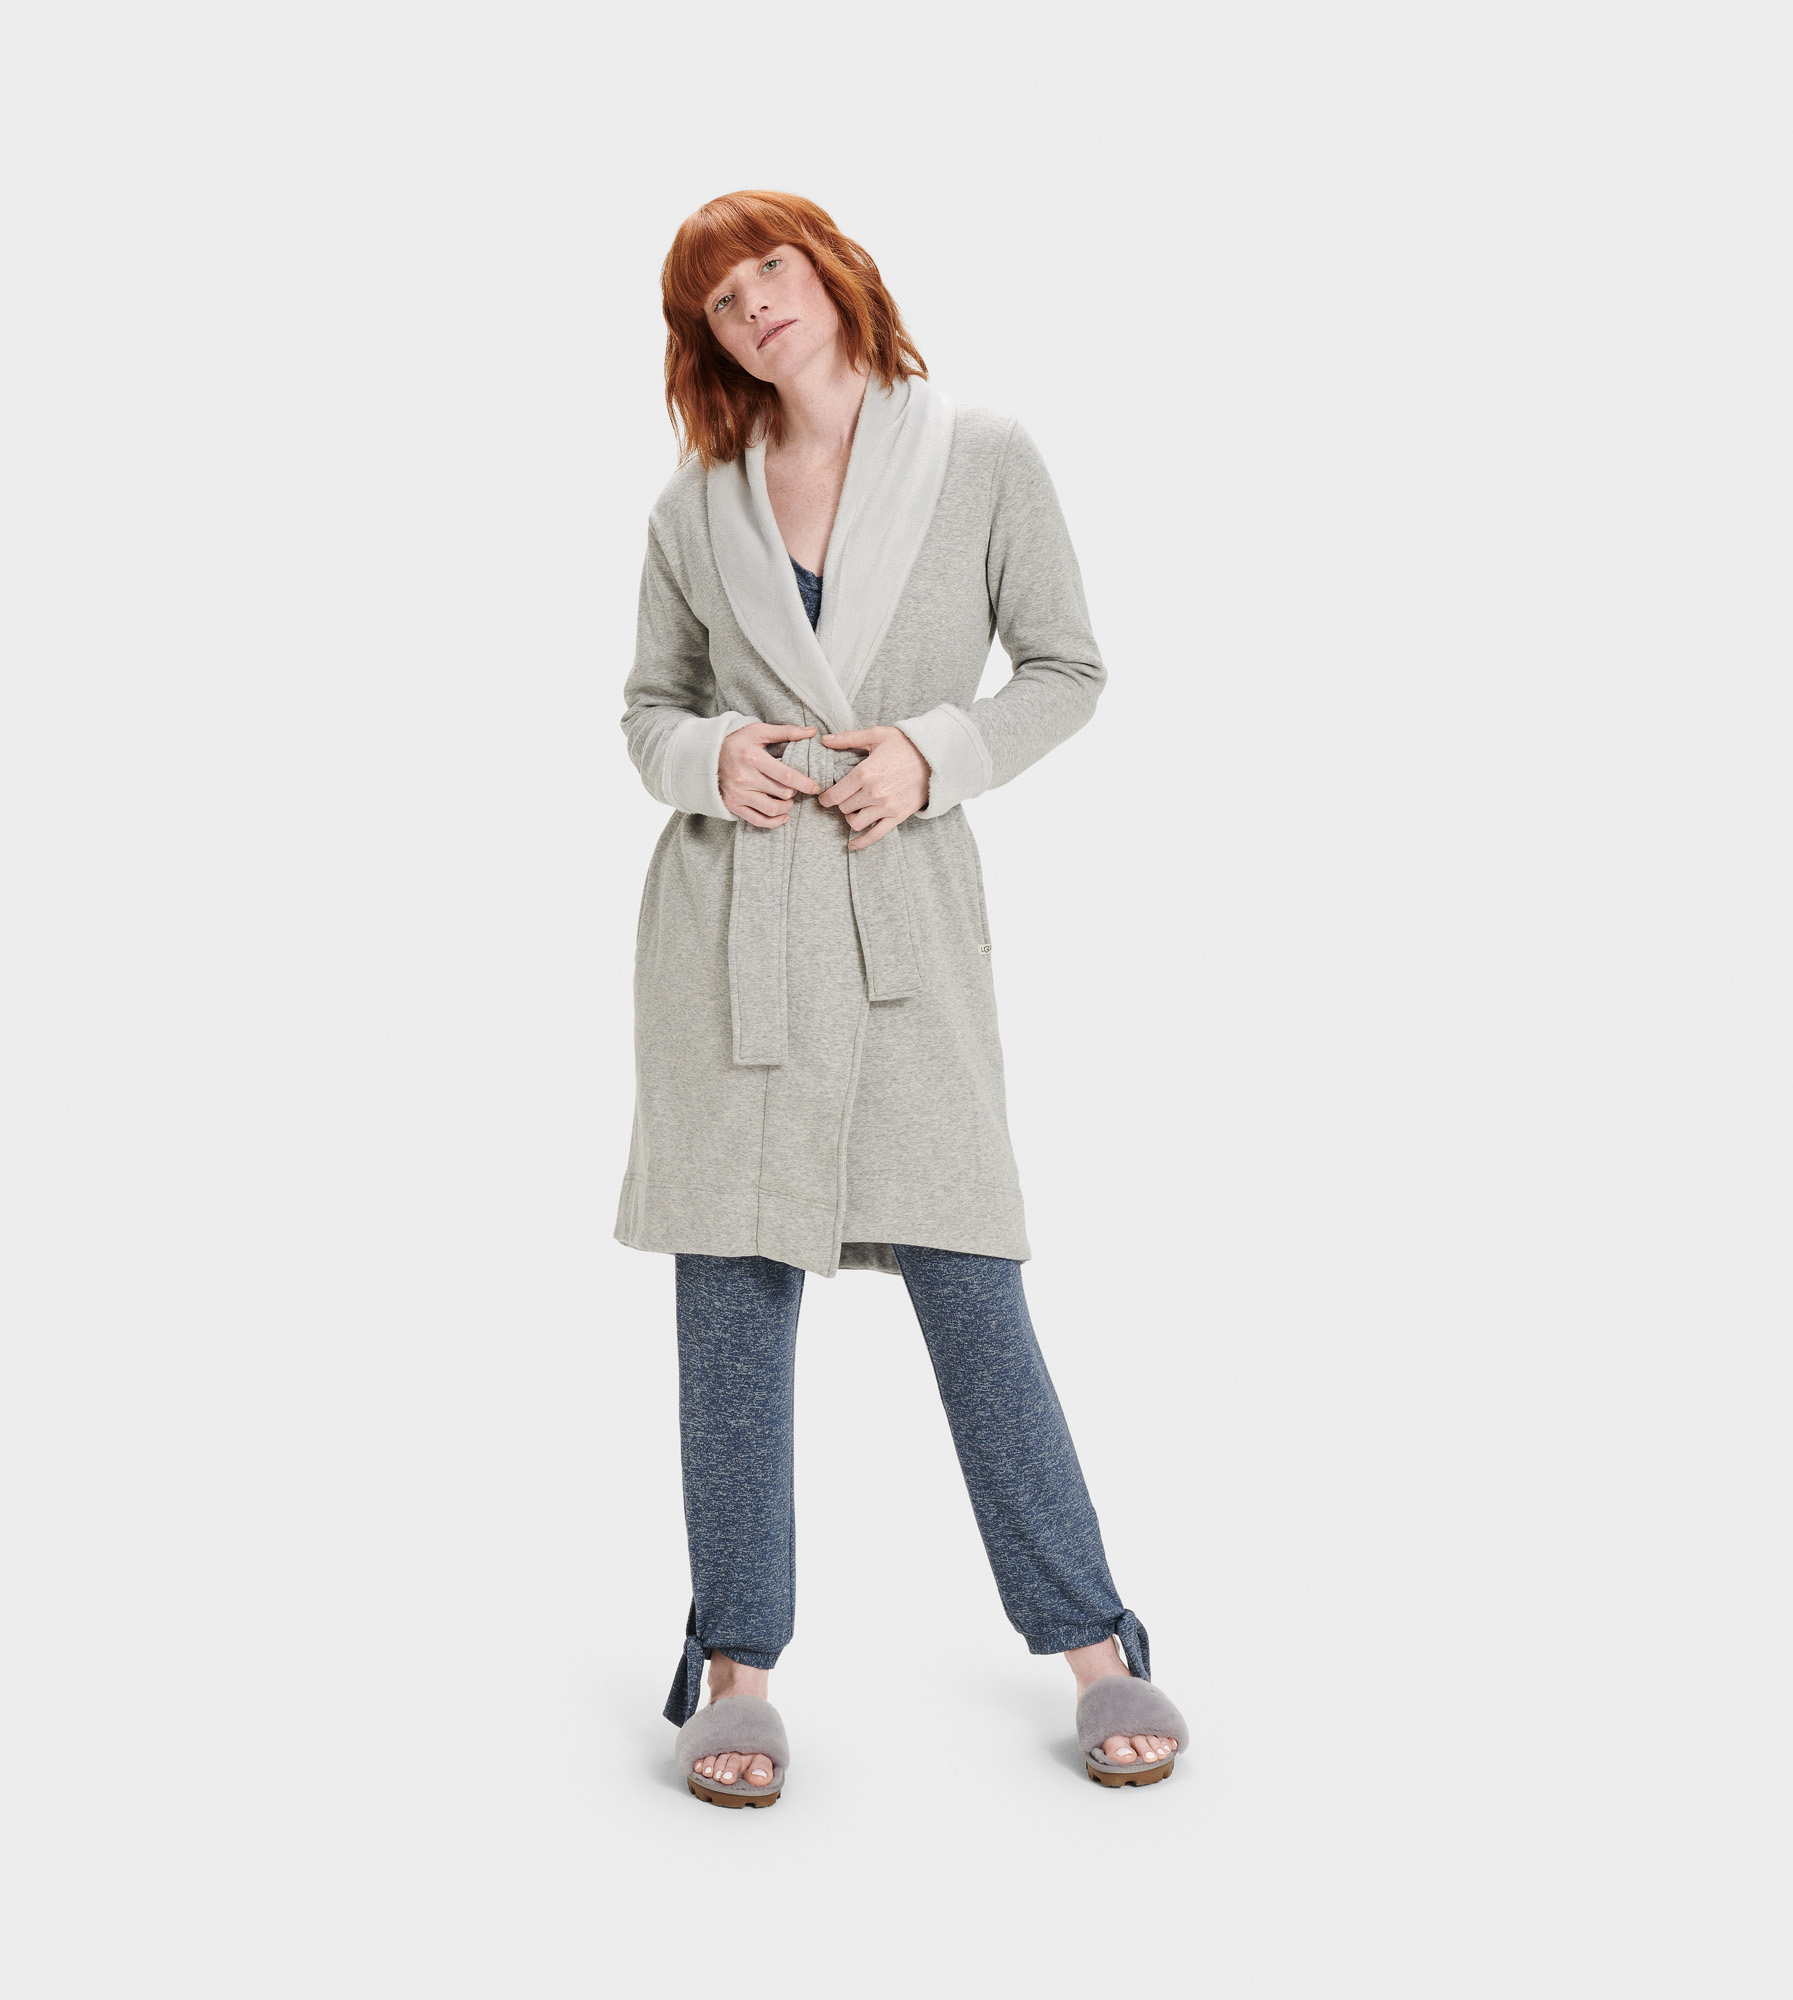 UGG Women's Blanche II Fleece Sleepwear in Grey, Size L A shorter-length version of our best-selling Duffield robe, the Blanche is crafted with soft fleece, so it feels like wrapping yourself in a blanket. Pair with our fluffy slippers and pretend it's the weekend. Lightweight double knit fleece: 92% Cotton, 8% Elastane, 100% Polyester pile. Self belt. On-seam side pockets. 39.5  center back length. UGG Women's Blanche II Fleece Sleepwear in Grey, Size L